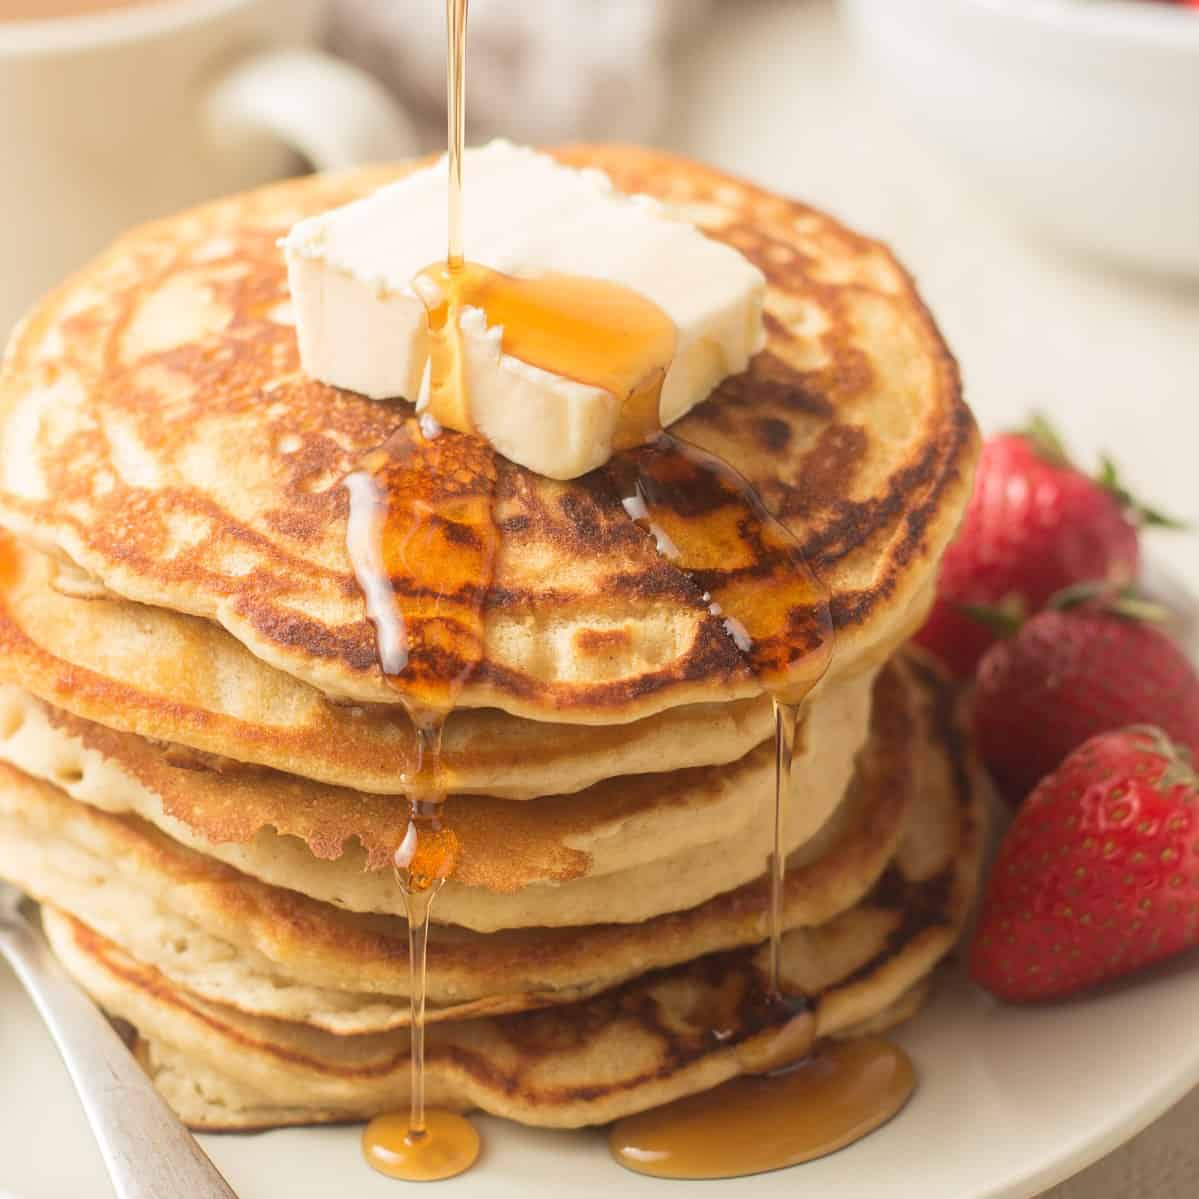 Syrup Being Poured Over a Stack of Vegan Pancakes with Butter and Strawberries